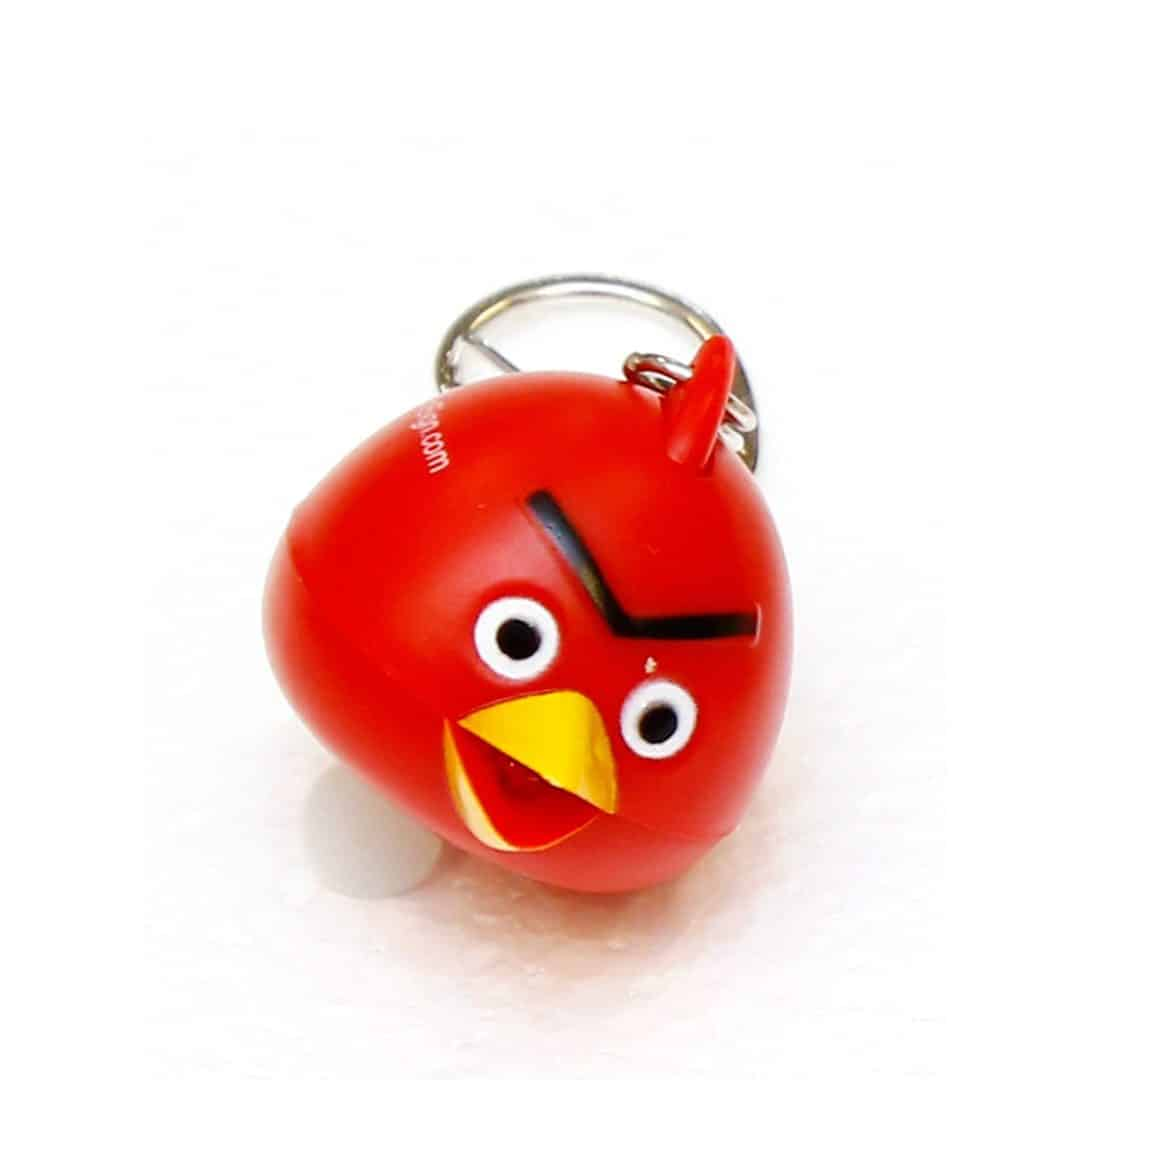 LED Light & Sound Keychains (Red)